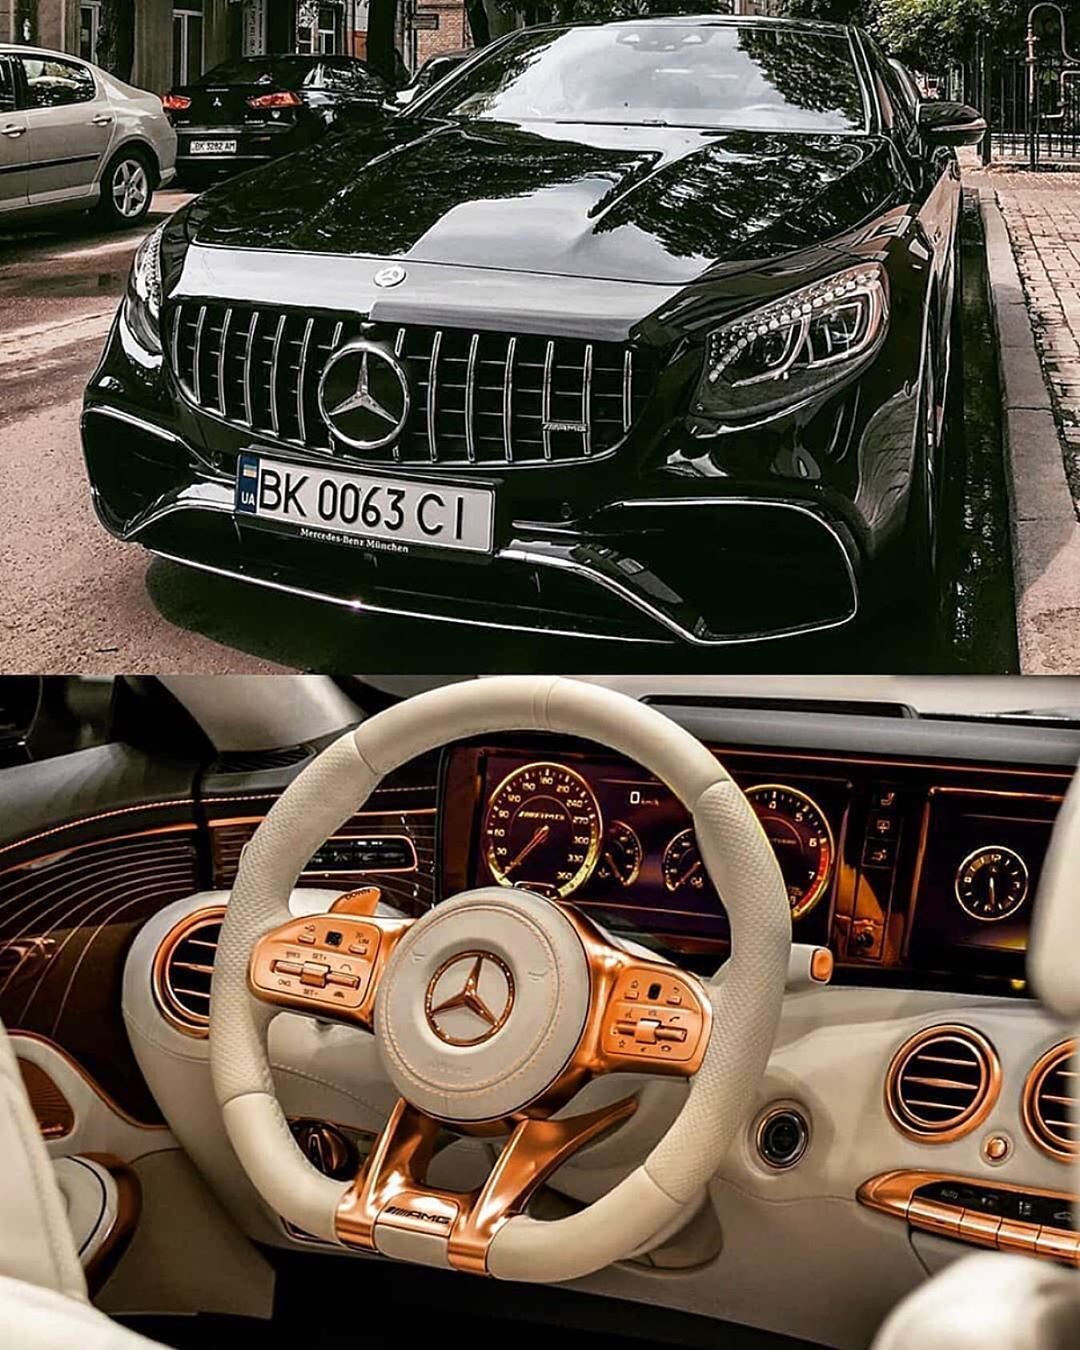 Mercedes Benz Amg S63 Follow Uber Luxury For More Via: S63 AMG Coupe With Gold Interior